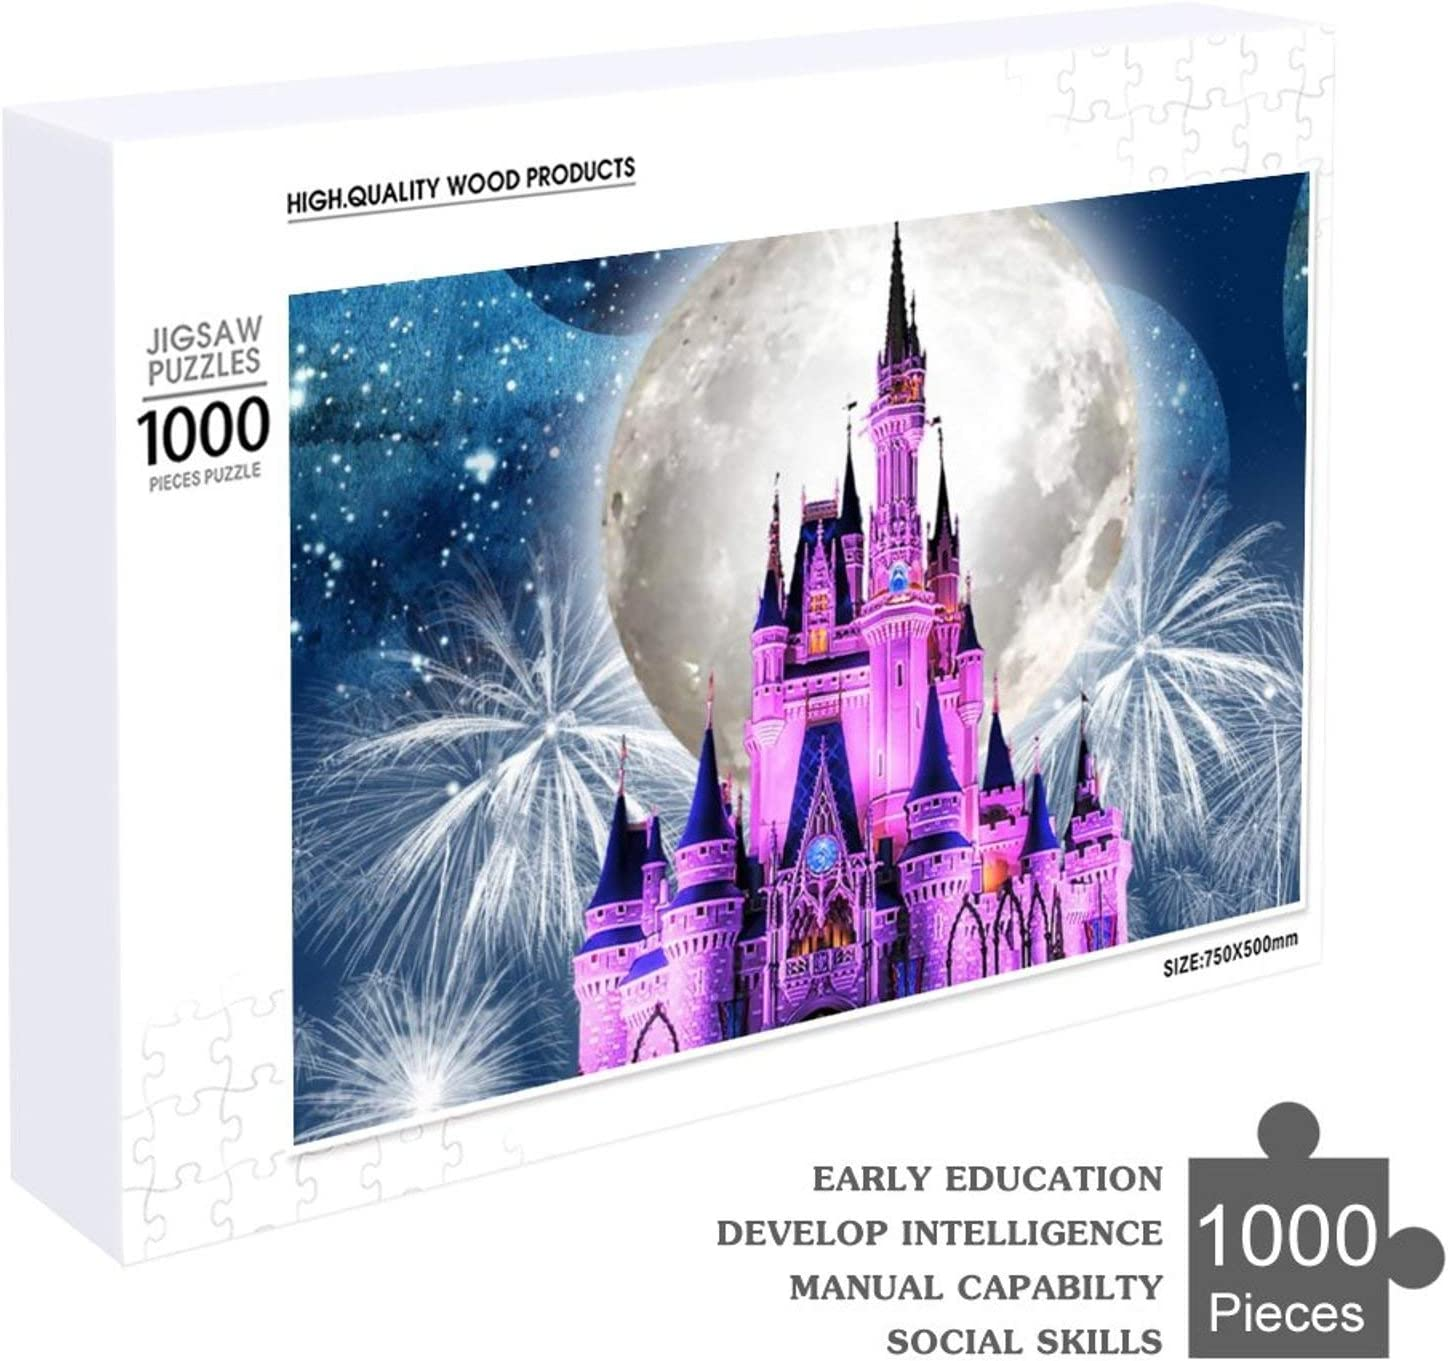 Puzzles for Toddlers Adults 1000 Pieces Purple Castle Puzzles for Teens Family Creative Gift for Home Decor Indoor Fun Game 70cm x 50cm 27.56 x 19.69 inch